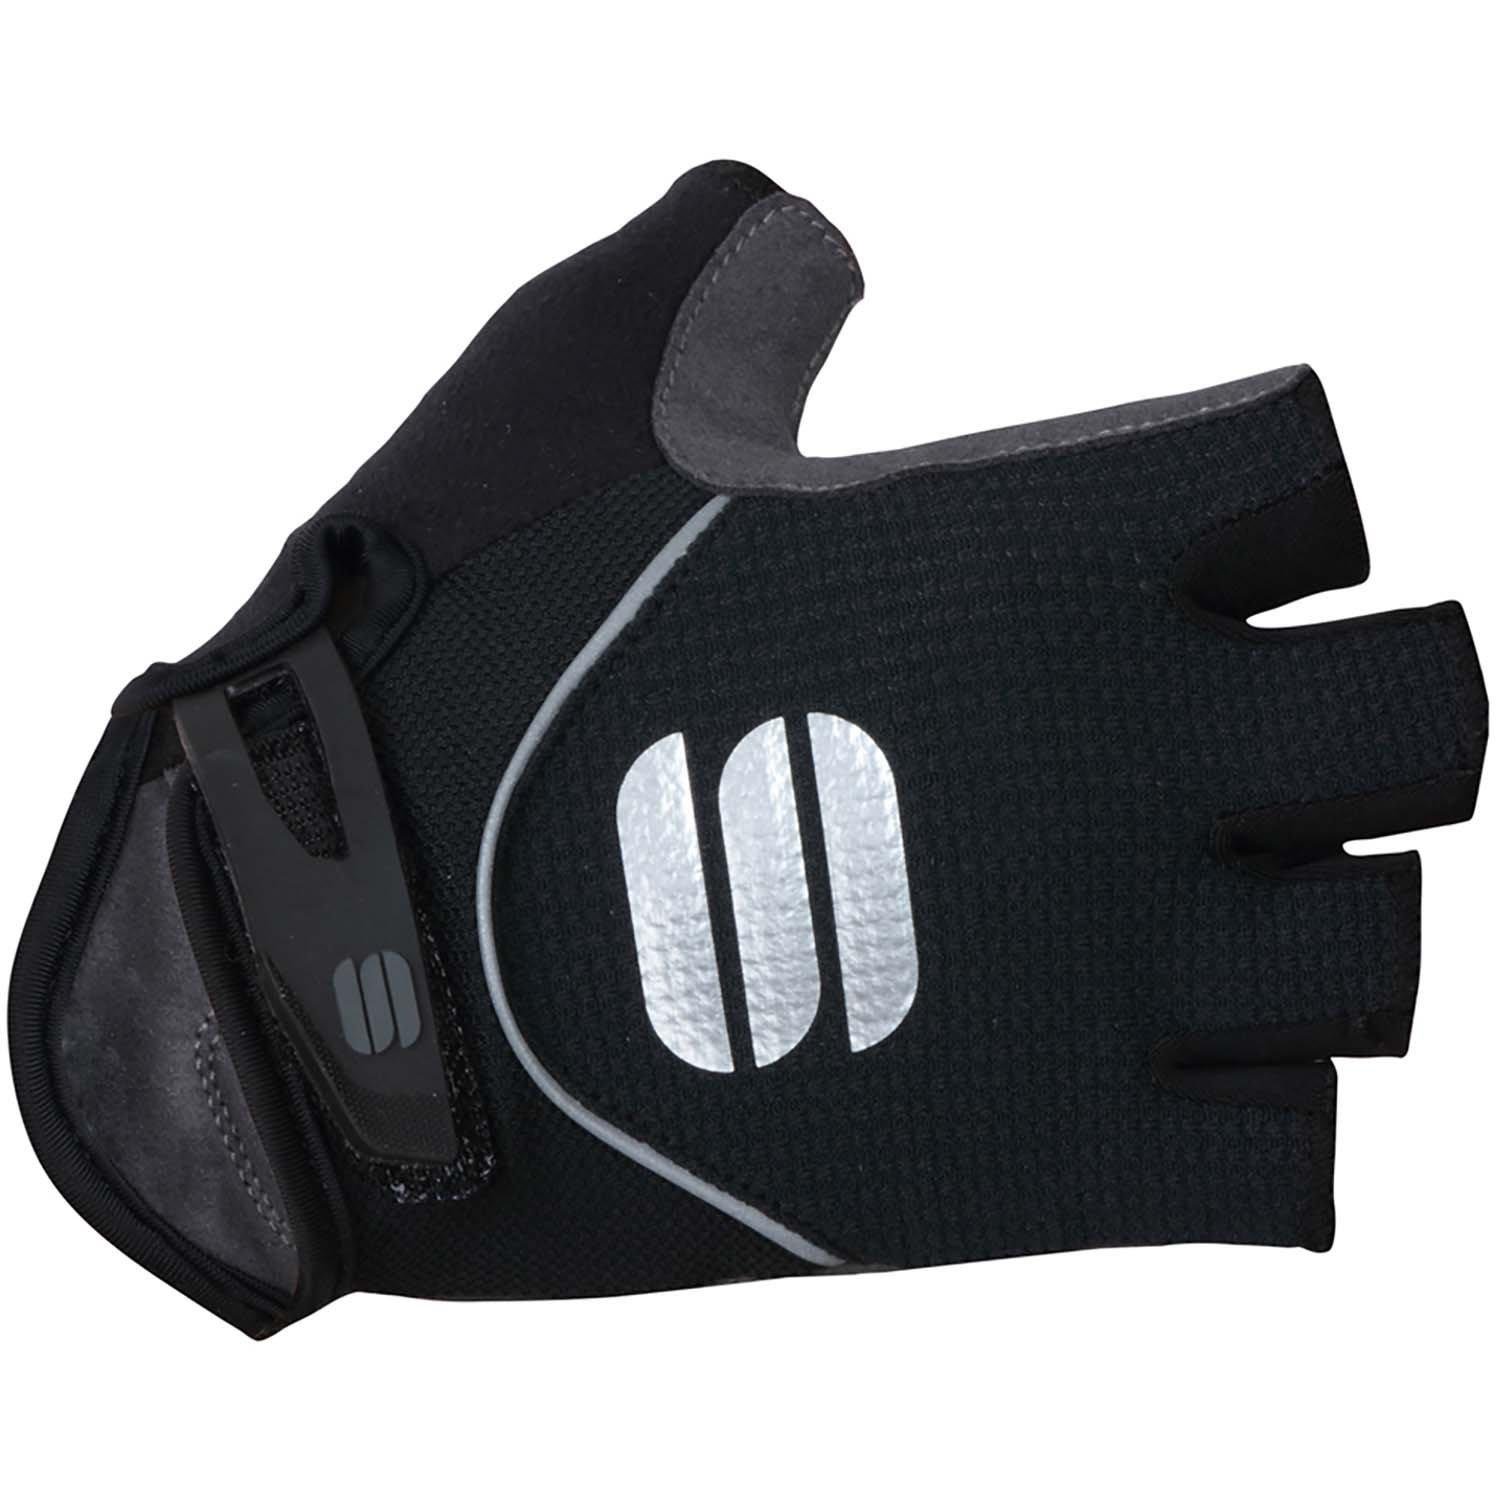 Sportful-Sportful Neo Women's Gloves-Black-XS-SF020640021-saddleback-elite-performance-cycling